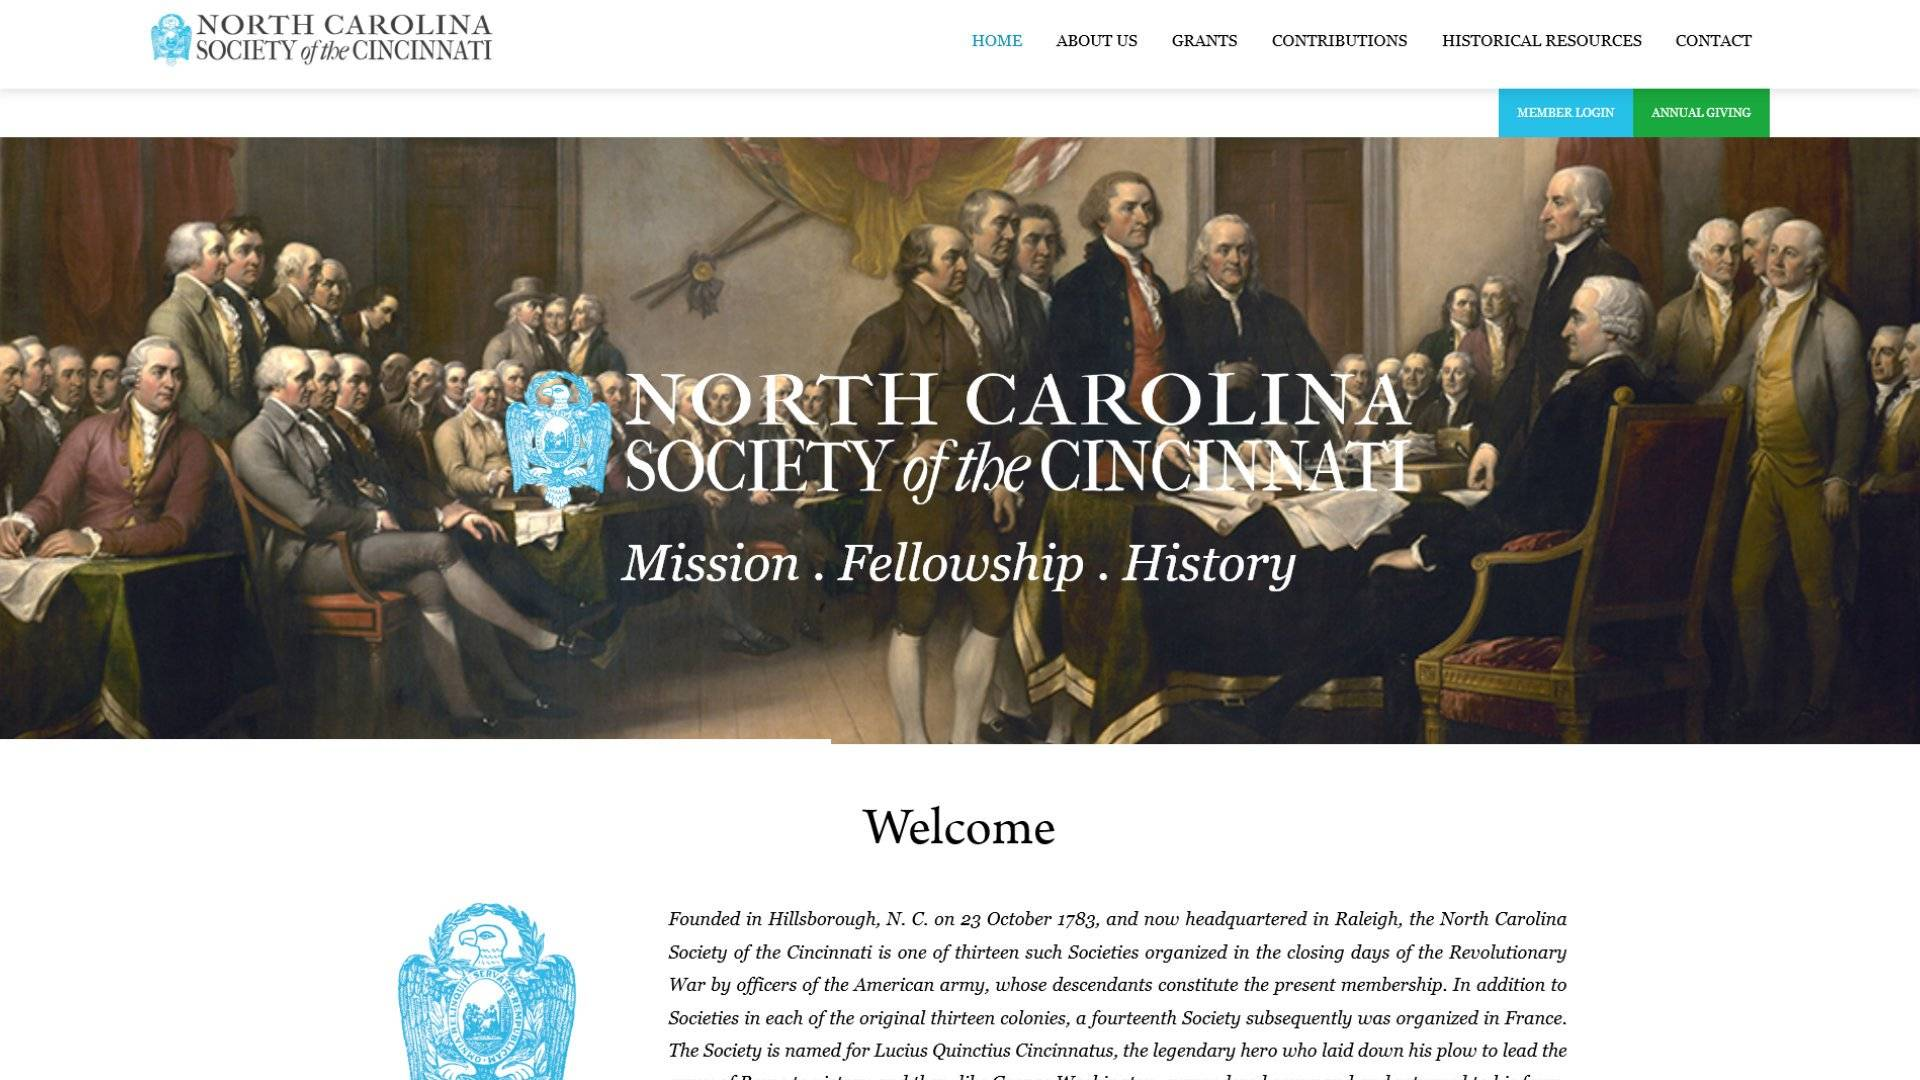 NC Society of the Cincinnati Case Study Placeholder Image